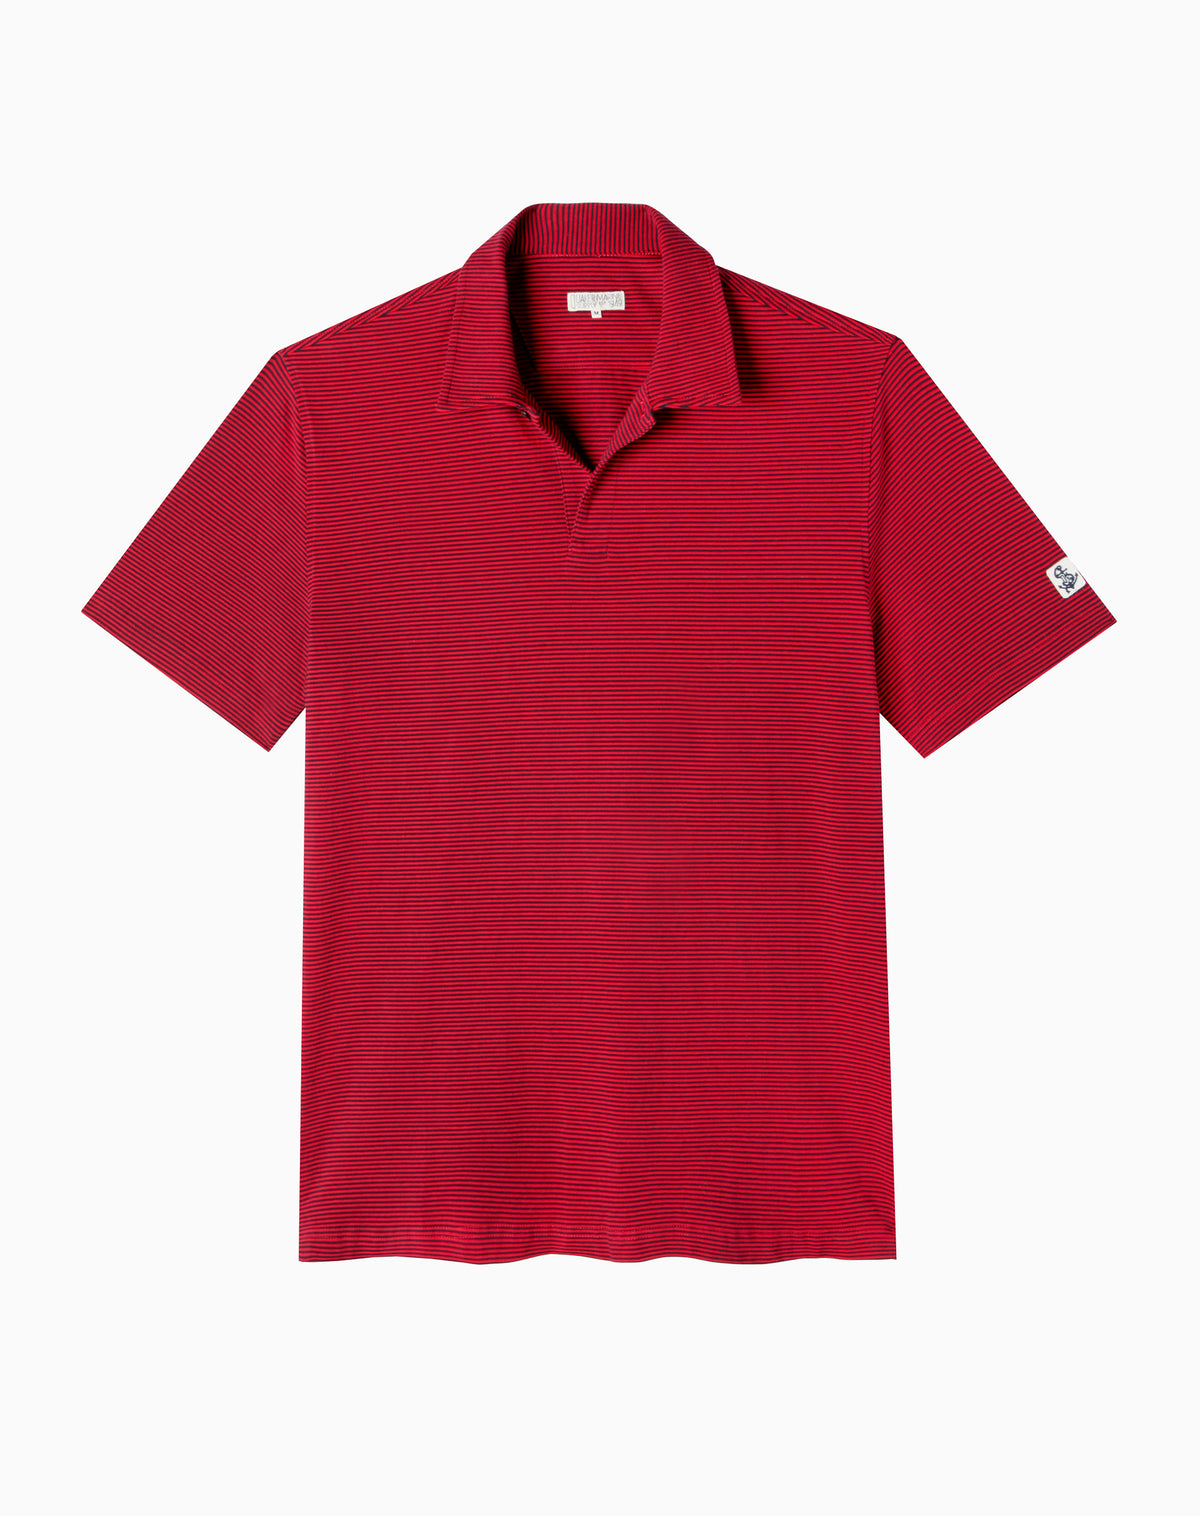 Fine Stripe Polo in Red/Navy